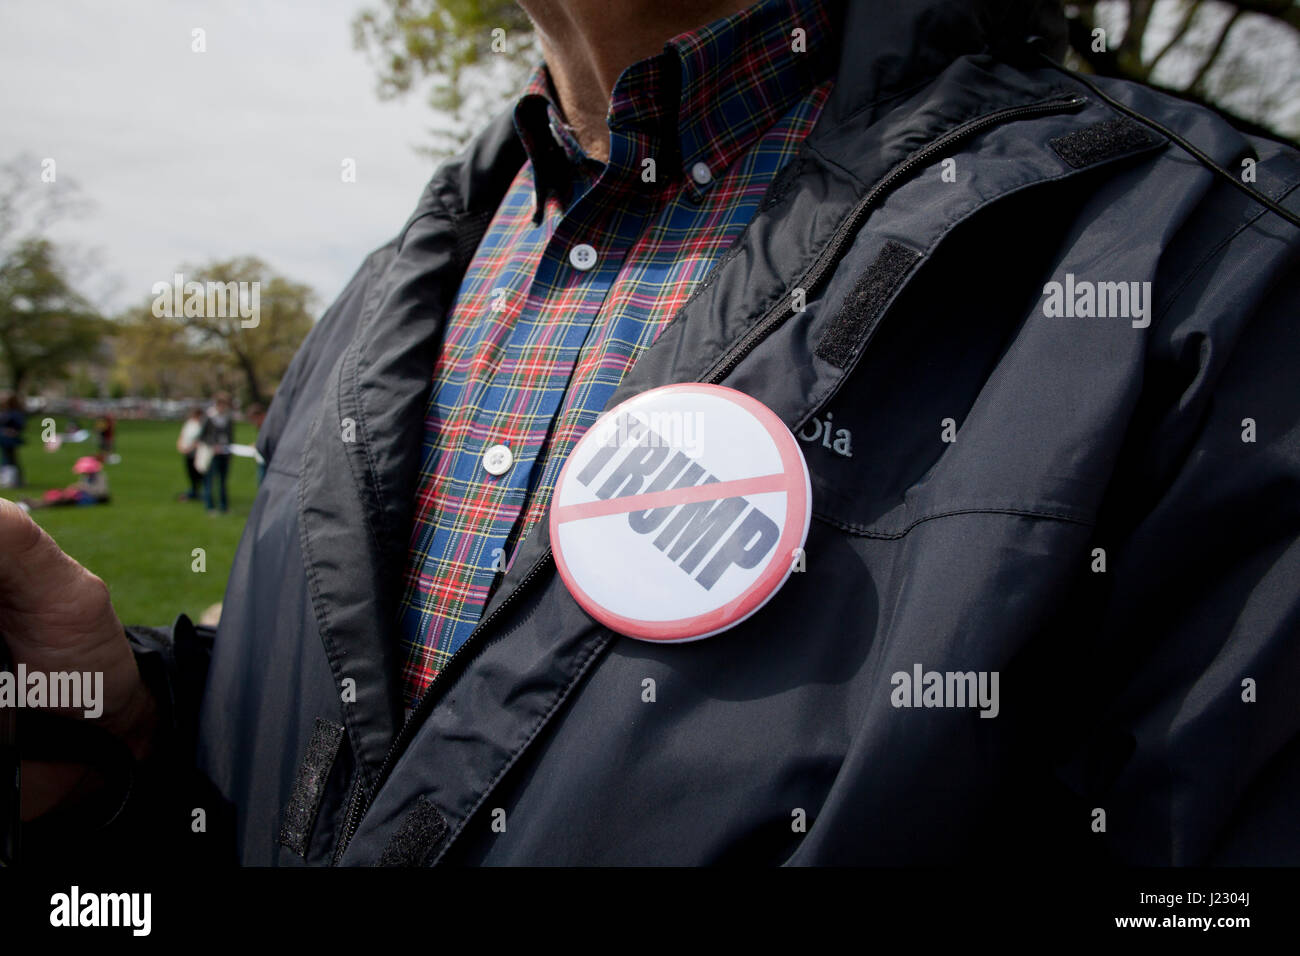 Anti-Trump protesters at the US Capitol building during TaxMarch - Washington, DC USA - Stock Image